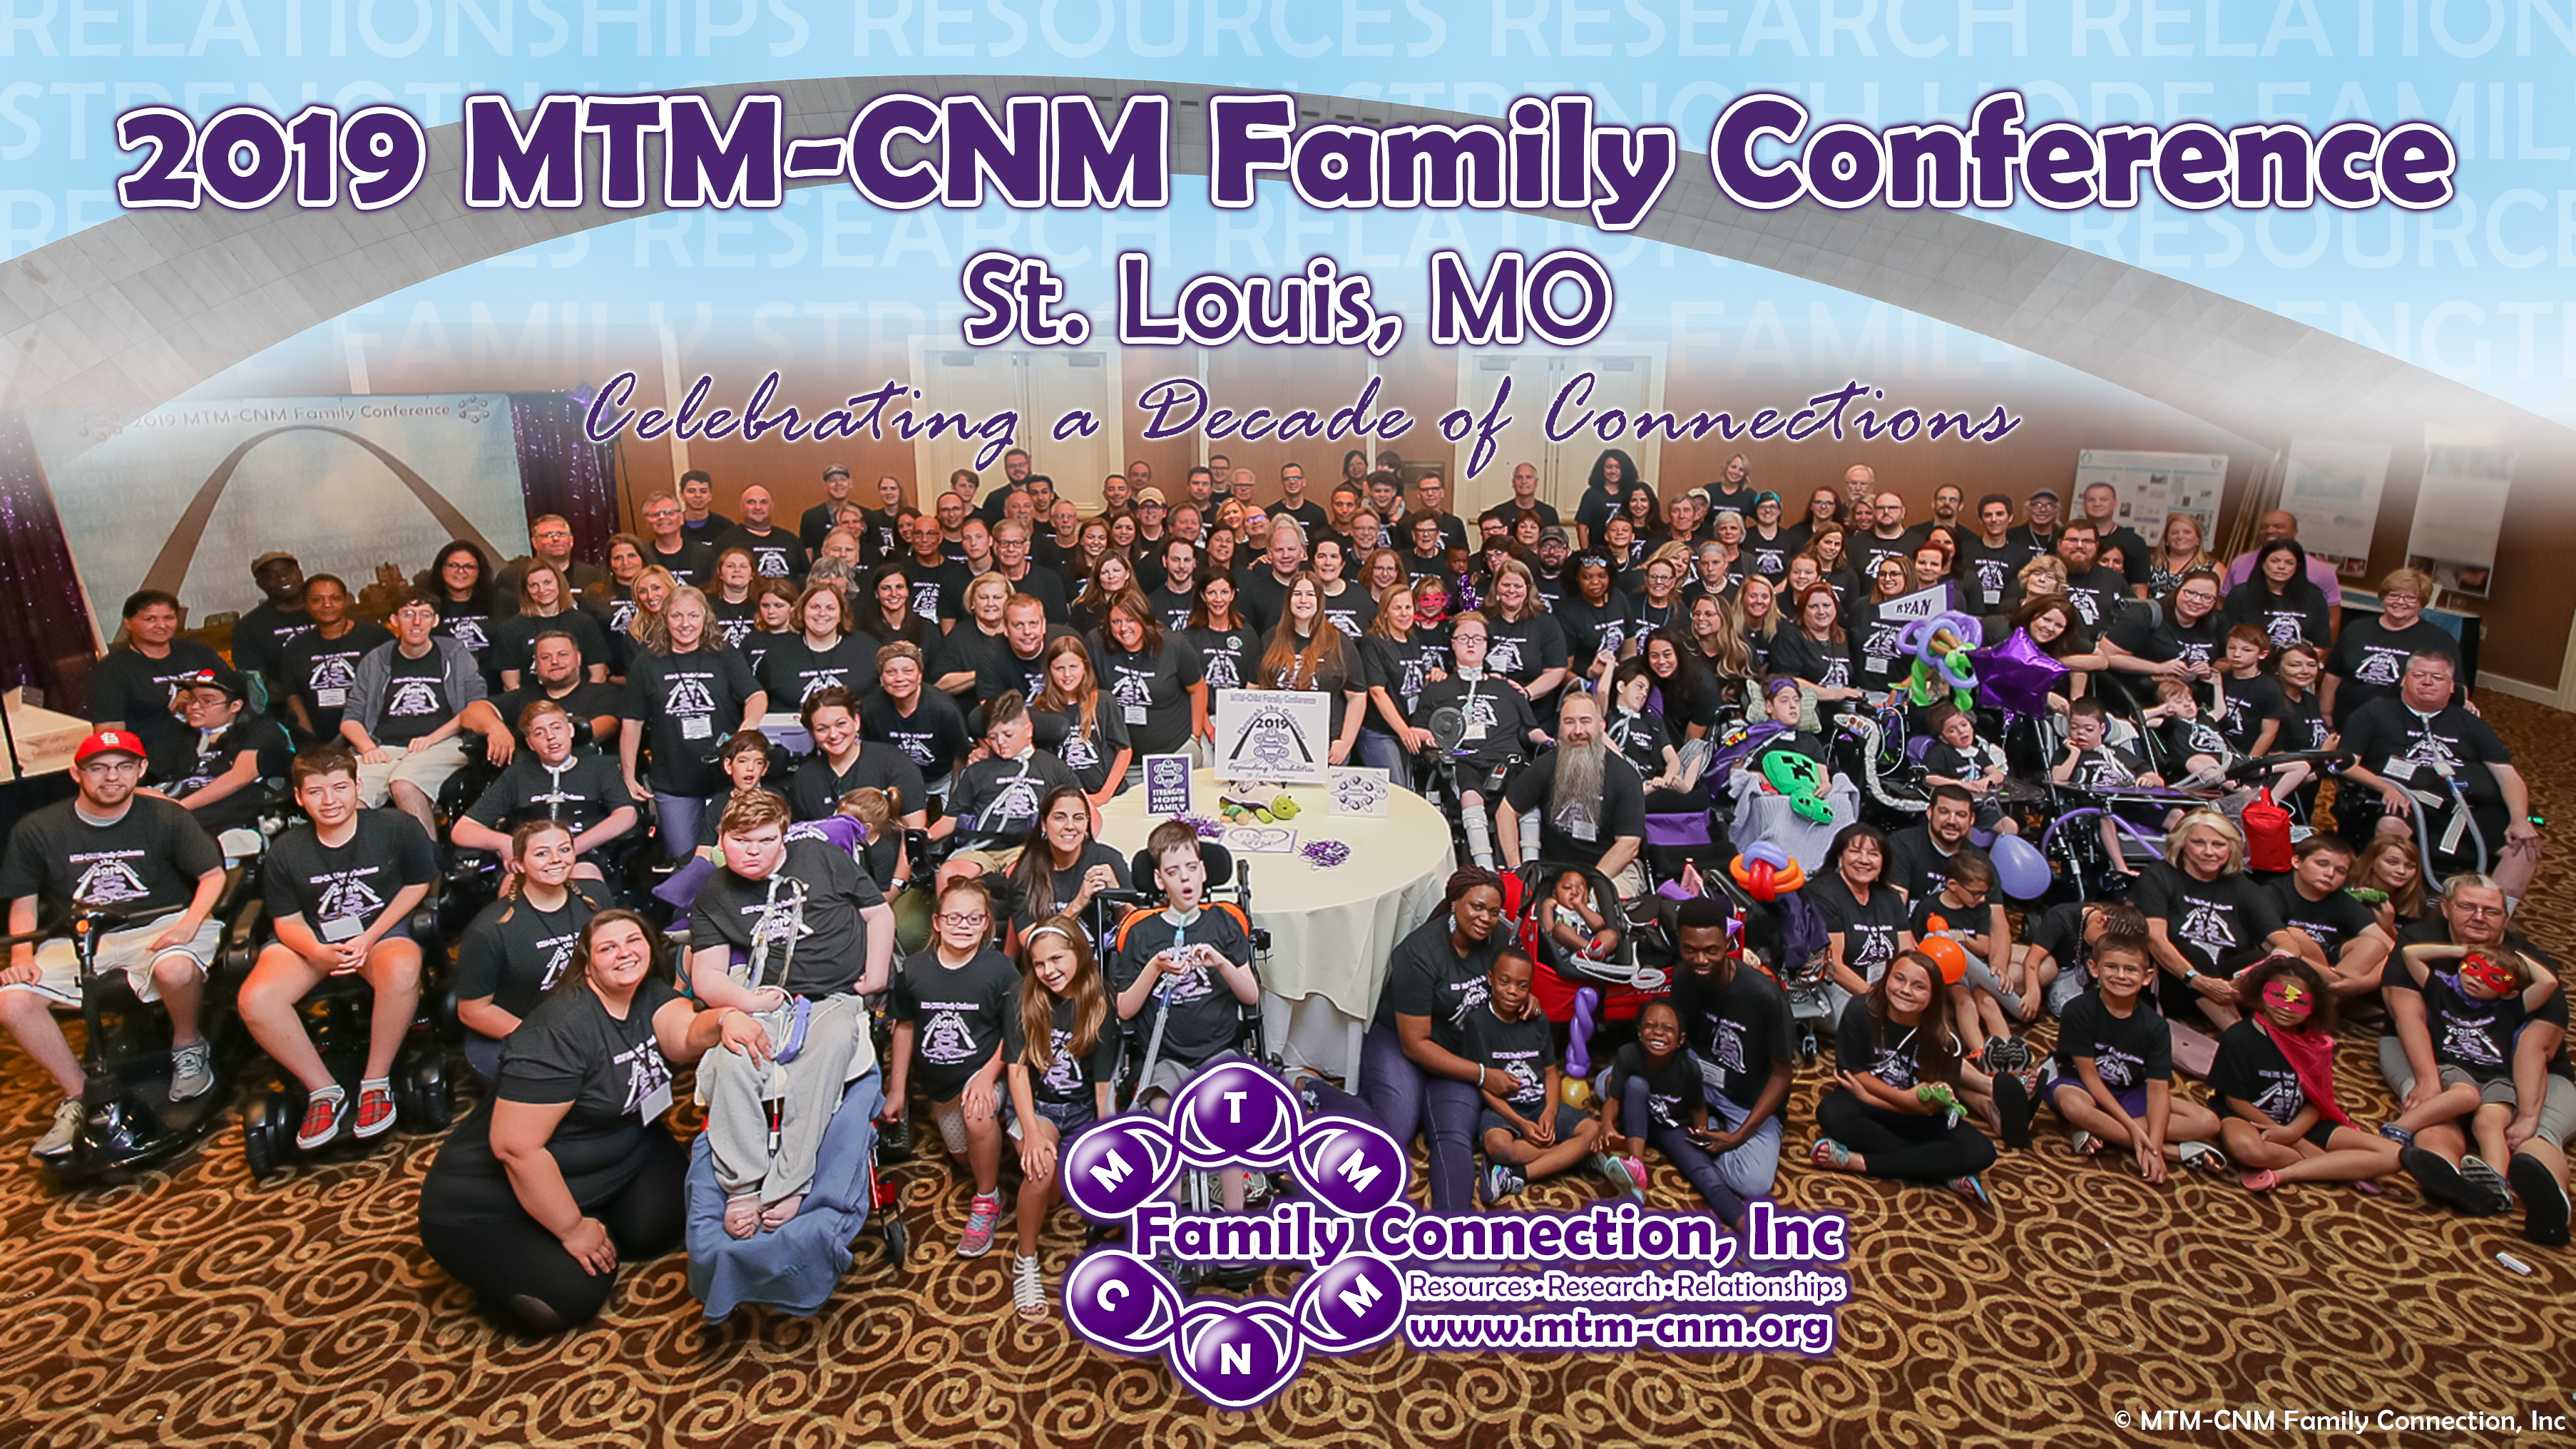 US MTM-CNM family conference group photo.